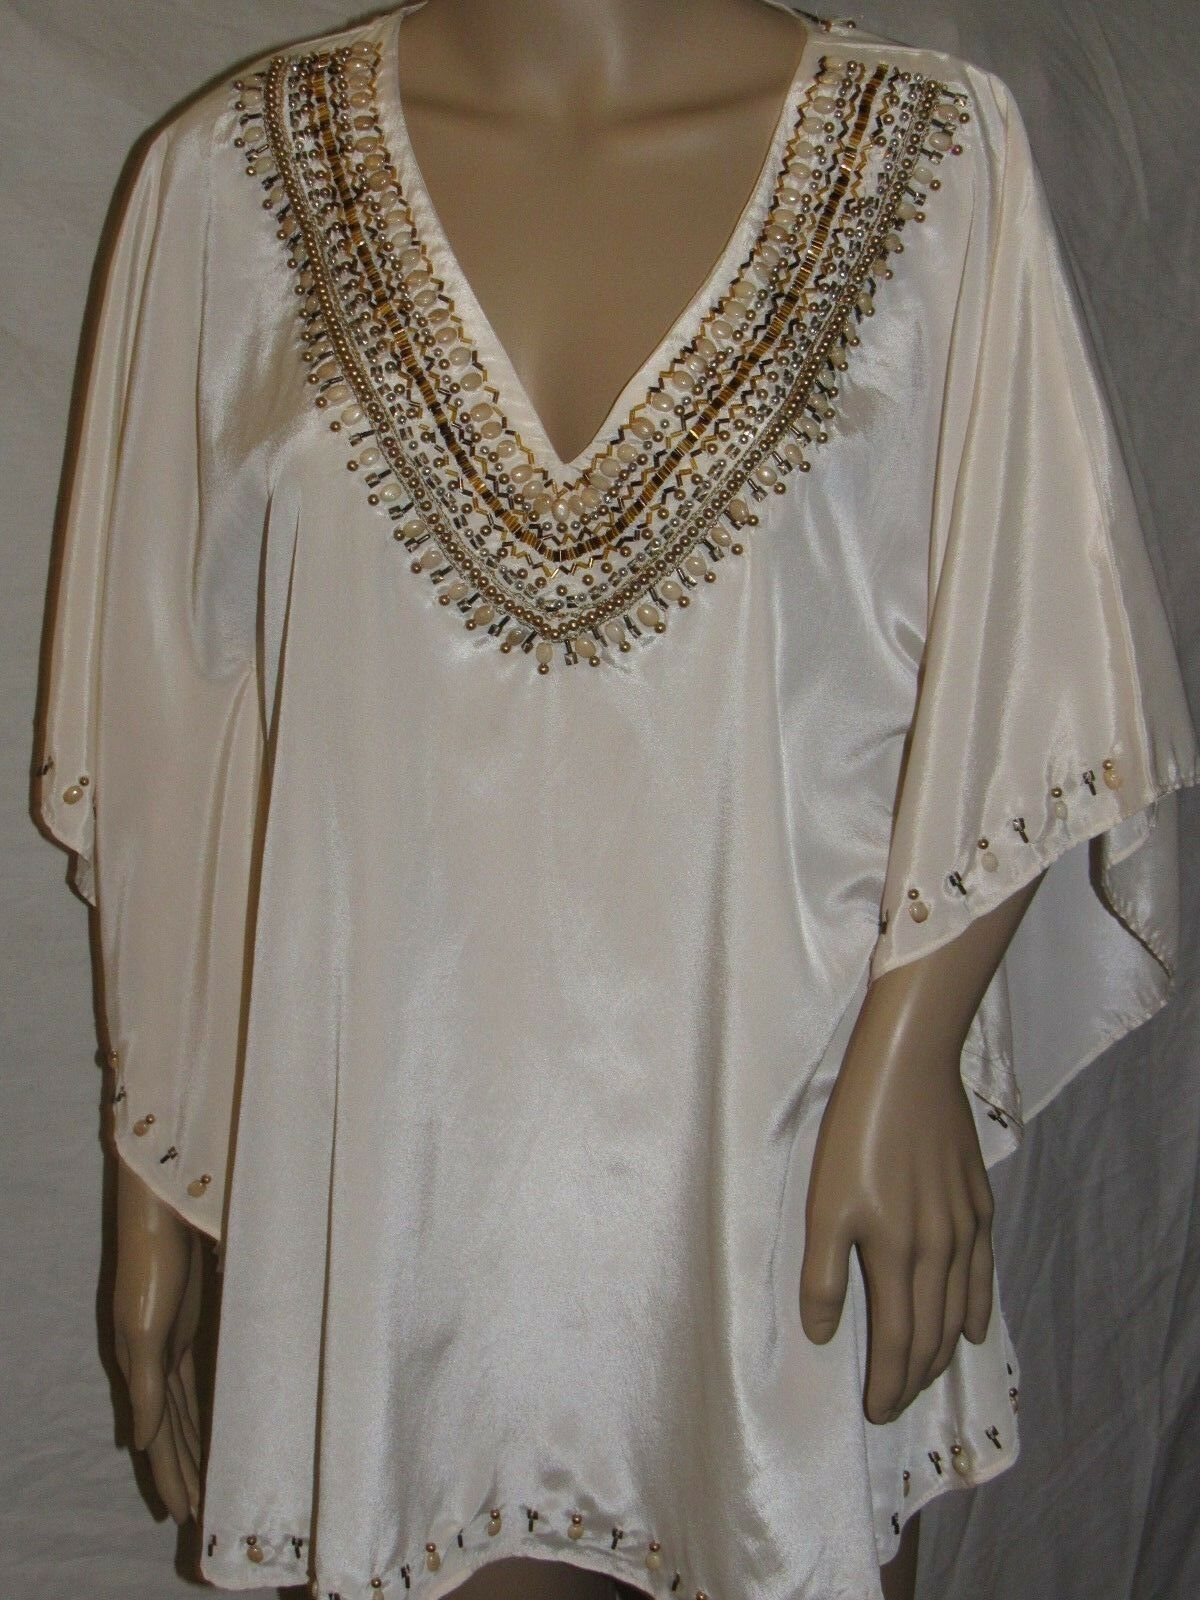 NEW KYRA MEDIUM Beige with Golden beaded neckline DOLMAN BLOUSE MSRP